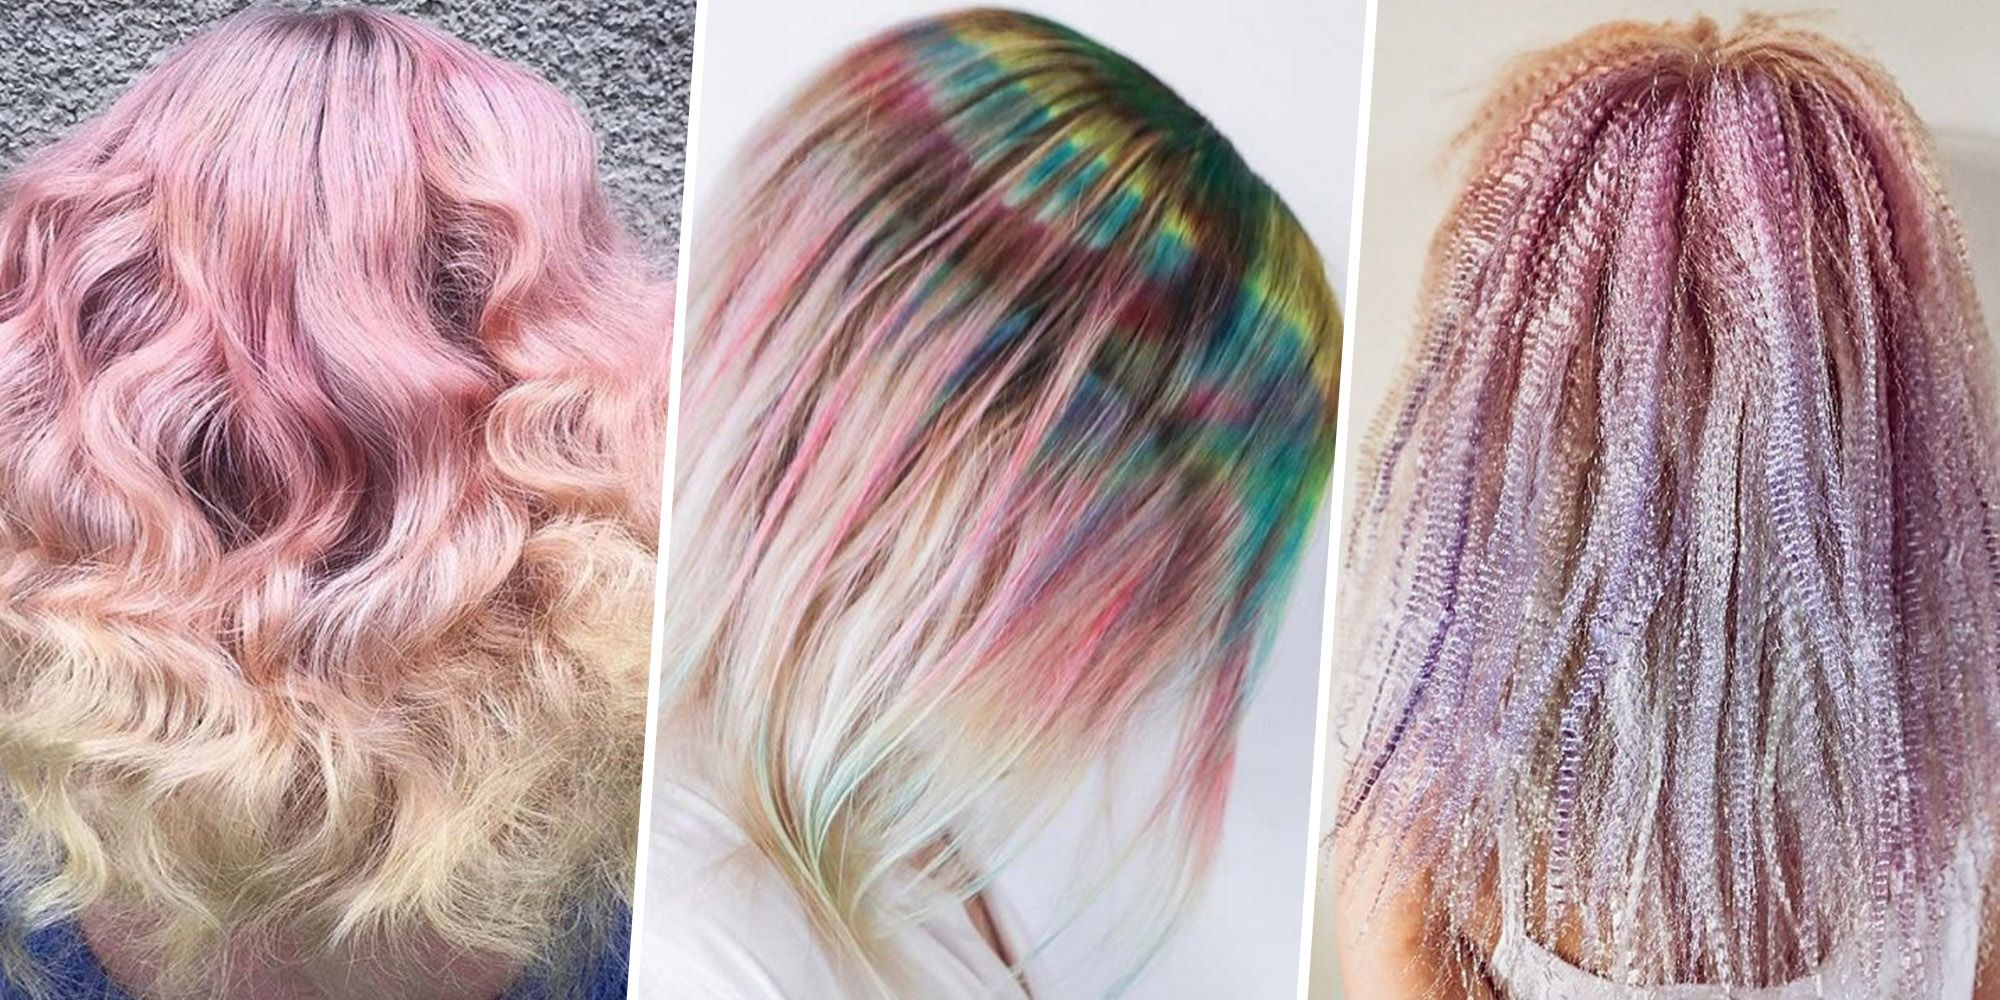 Best Hair Color Ideas in 2017 - Top Summer Hair Color Trends